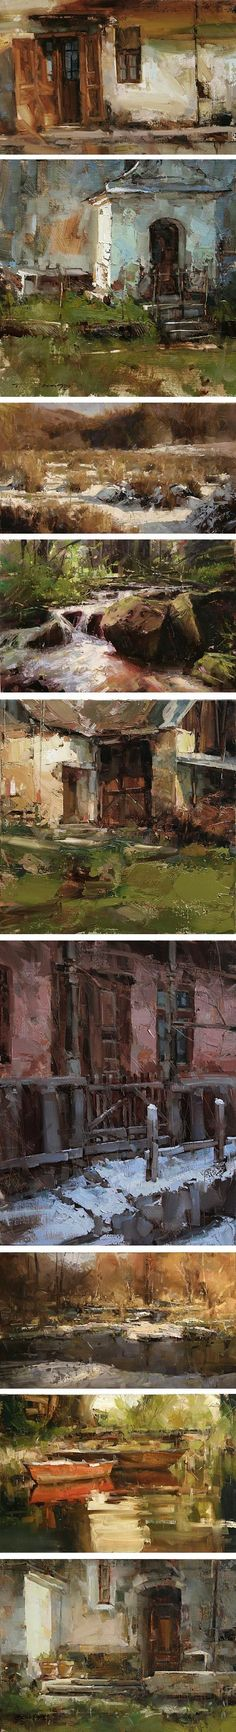 lines and colors :: a blog about drawing, painting, illustration, comics, concept art and other visual arts » Tibor Nagy